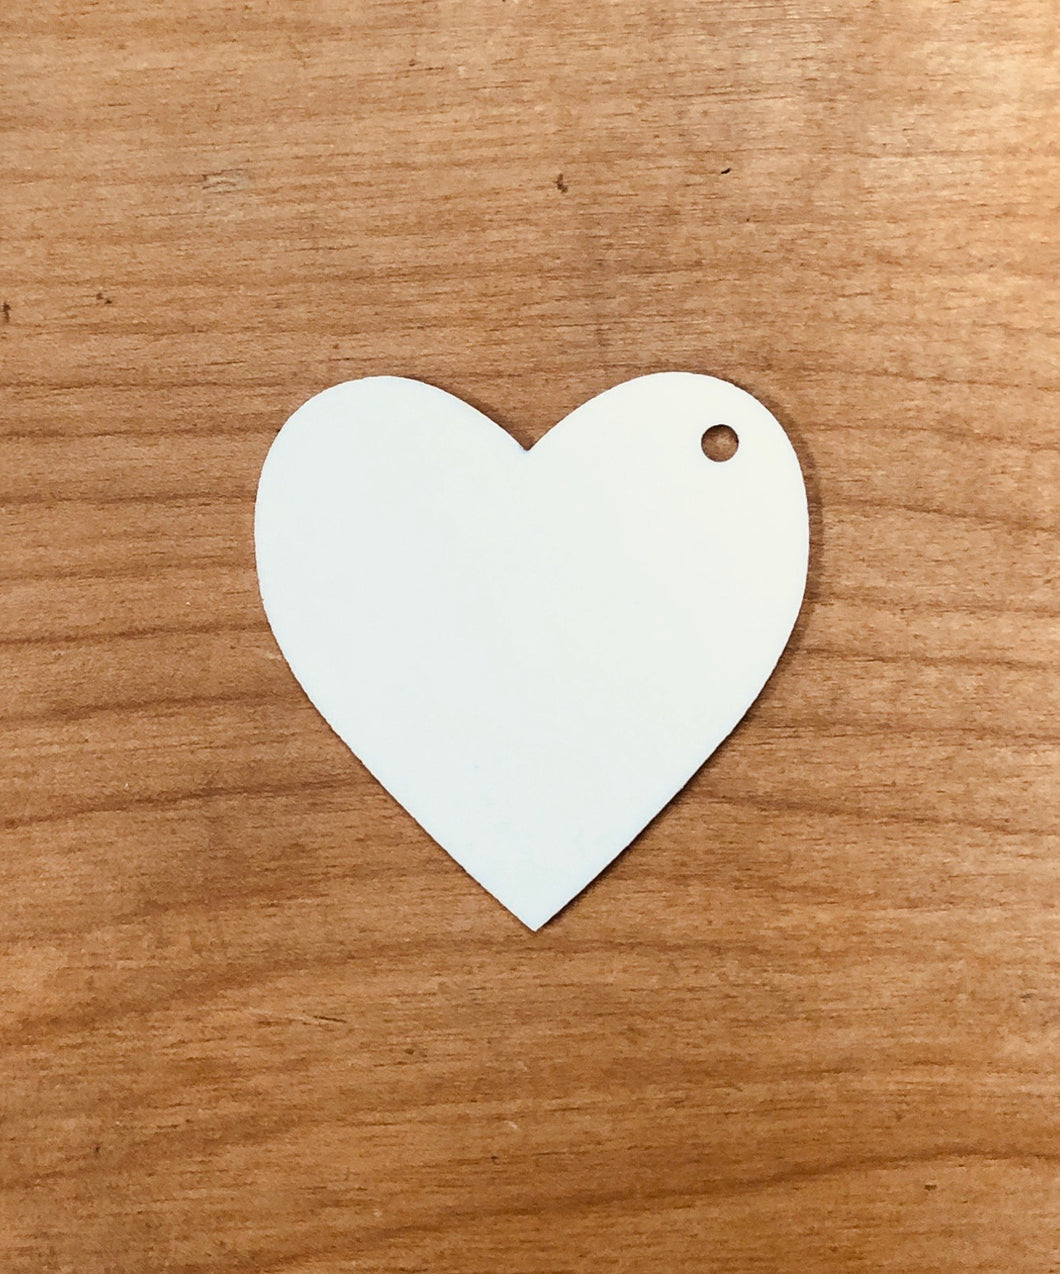 Heart Shaped Keychain Blanks for Sublimation